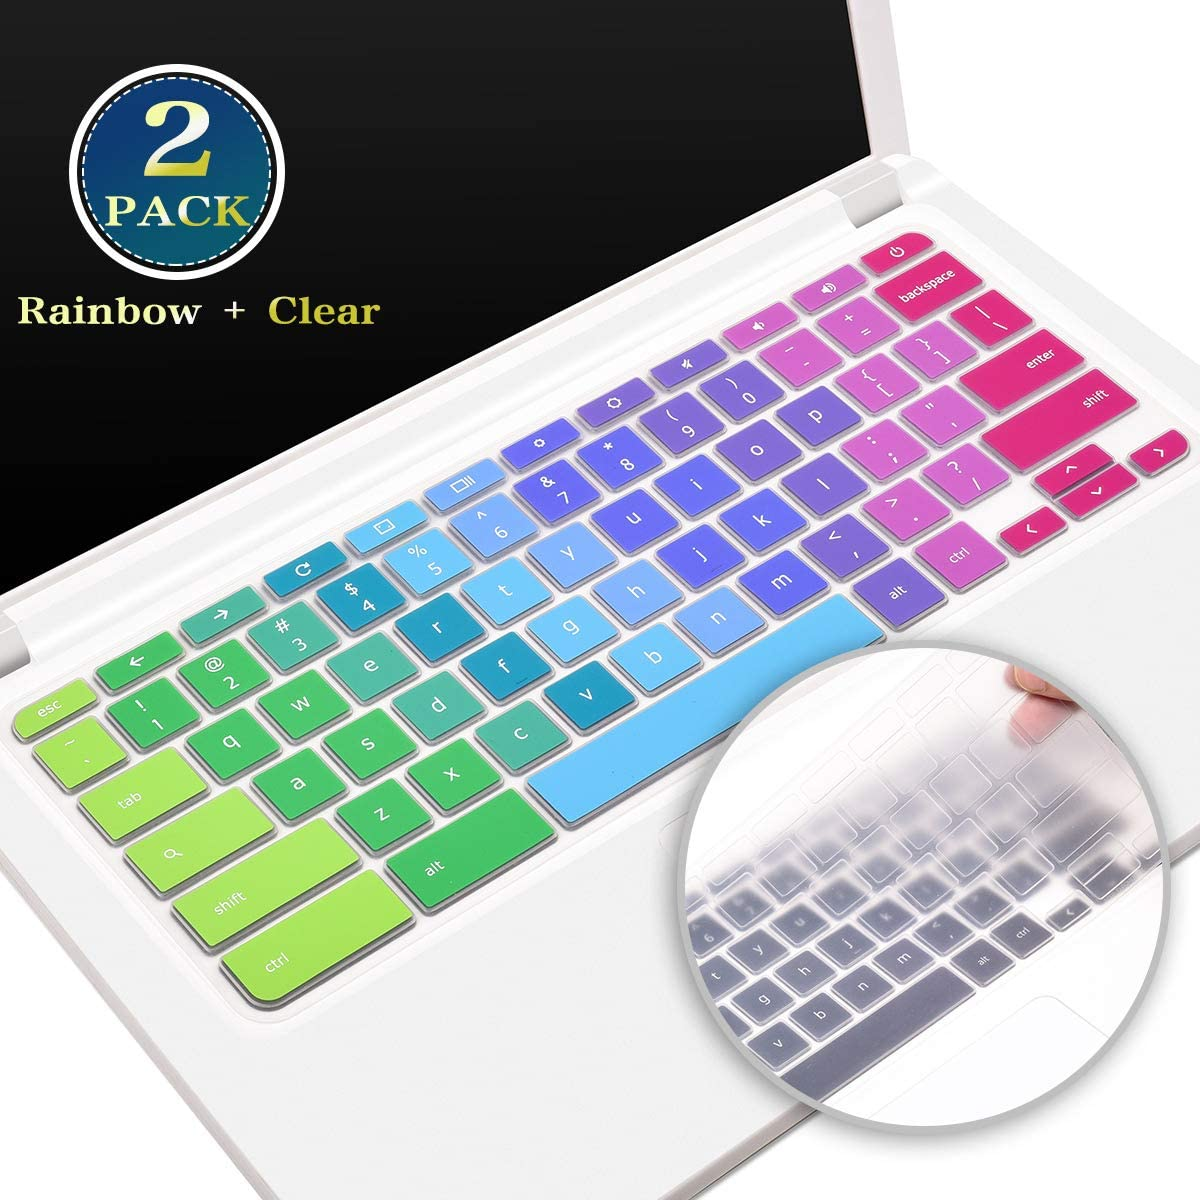 "for Lenovo Chromebook 11.6 Inch Keyboard Cover C330, Silicone Keyboard Skin for Lenovo Flex 11 Chromebook/Chromebook N20 N21 N22 N23 100e 300e 500e 11.6"", 14"" Chromebook N42 N42-20(Rainbow+Clear)"